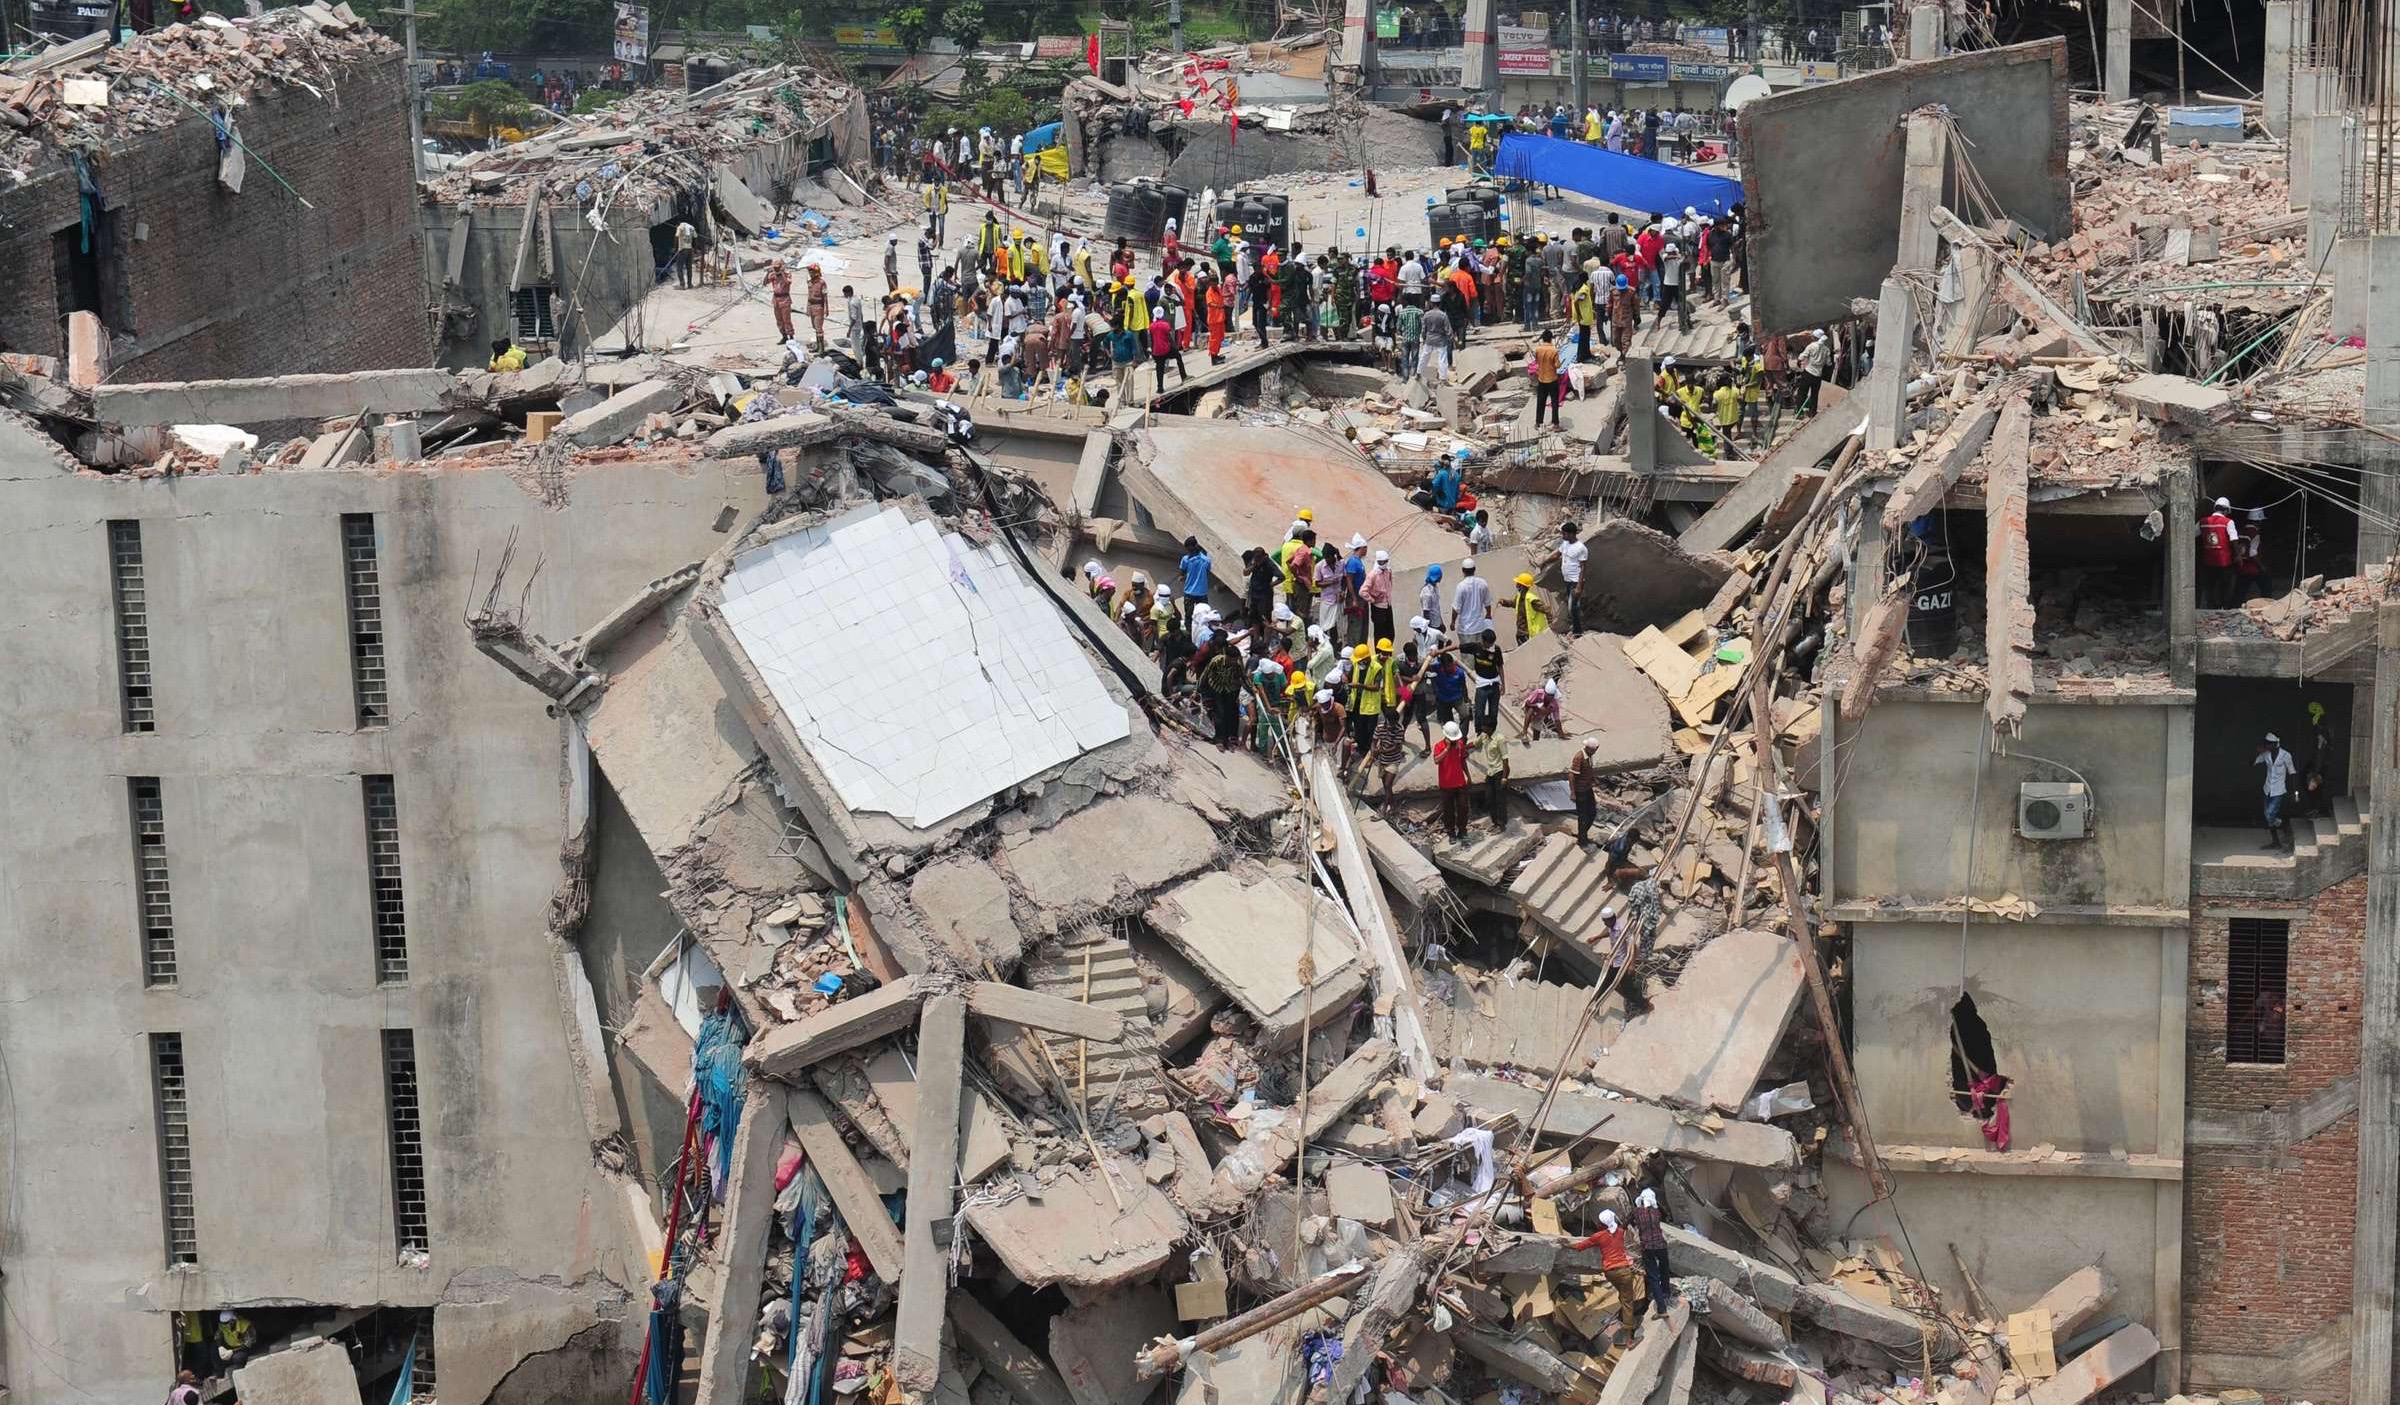 FW: Public agitation as Port Harcourt storey building collapses